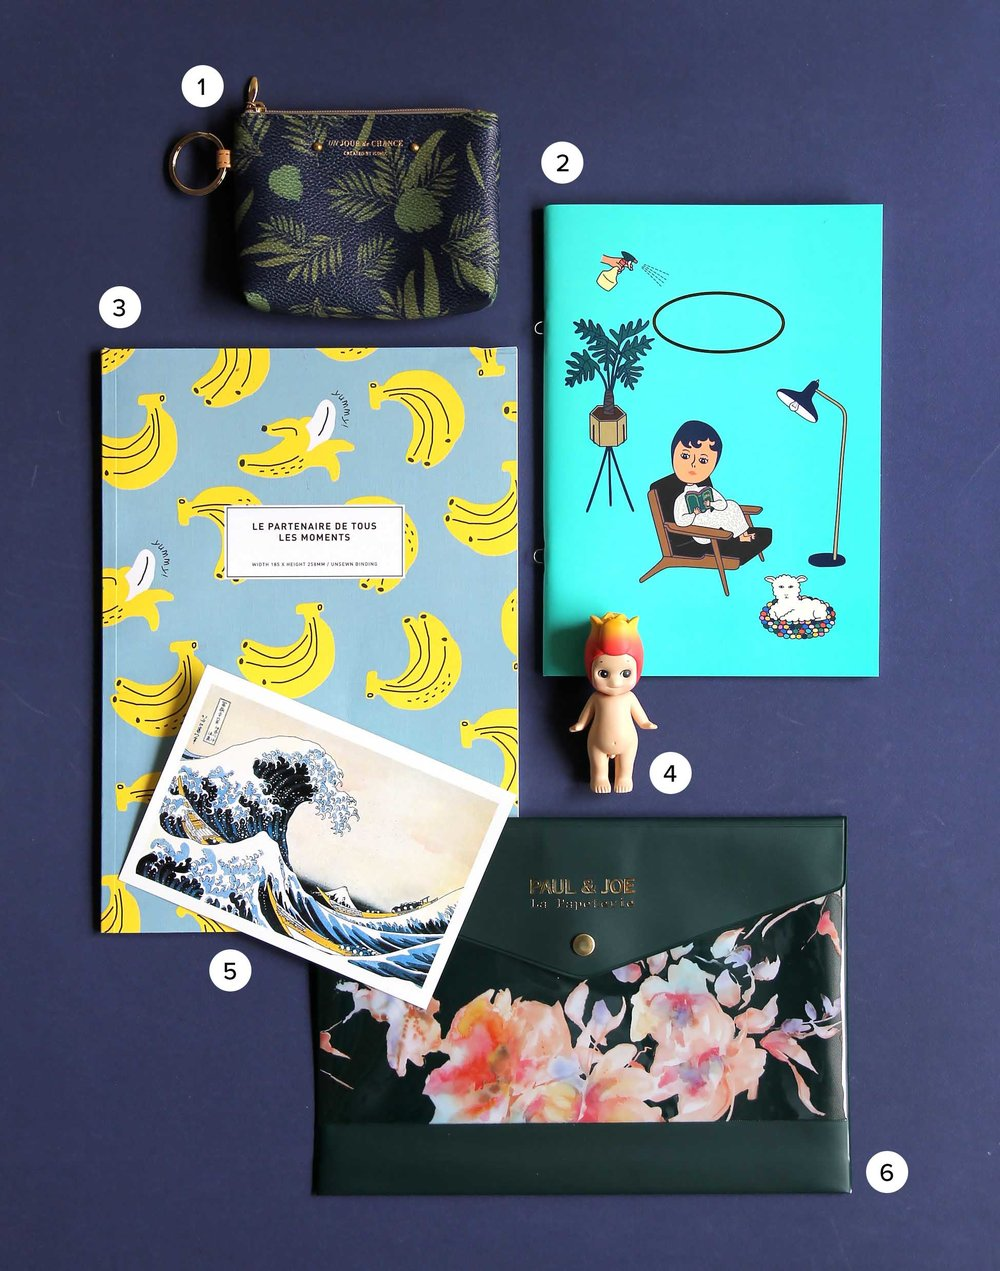 1. Iconic - Un Jour de Chance purse  from Sangsang (Hongdae, Seoul), 3.  Banana notebook from ArtBox (Hongdae, Seoul) ,  4. Sonny Angel Collectable Dolls-Flower Series (available globally) ,  5. Postcard from Sekaido (Shinjuku, Tokyo) ,  6. Paul & Joe Le Papeterie from Tokyo Hands